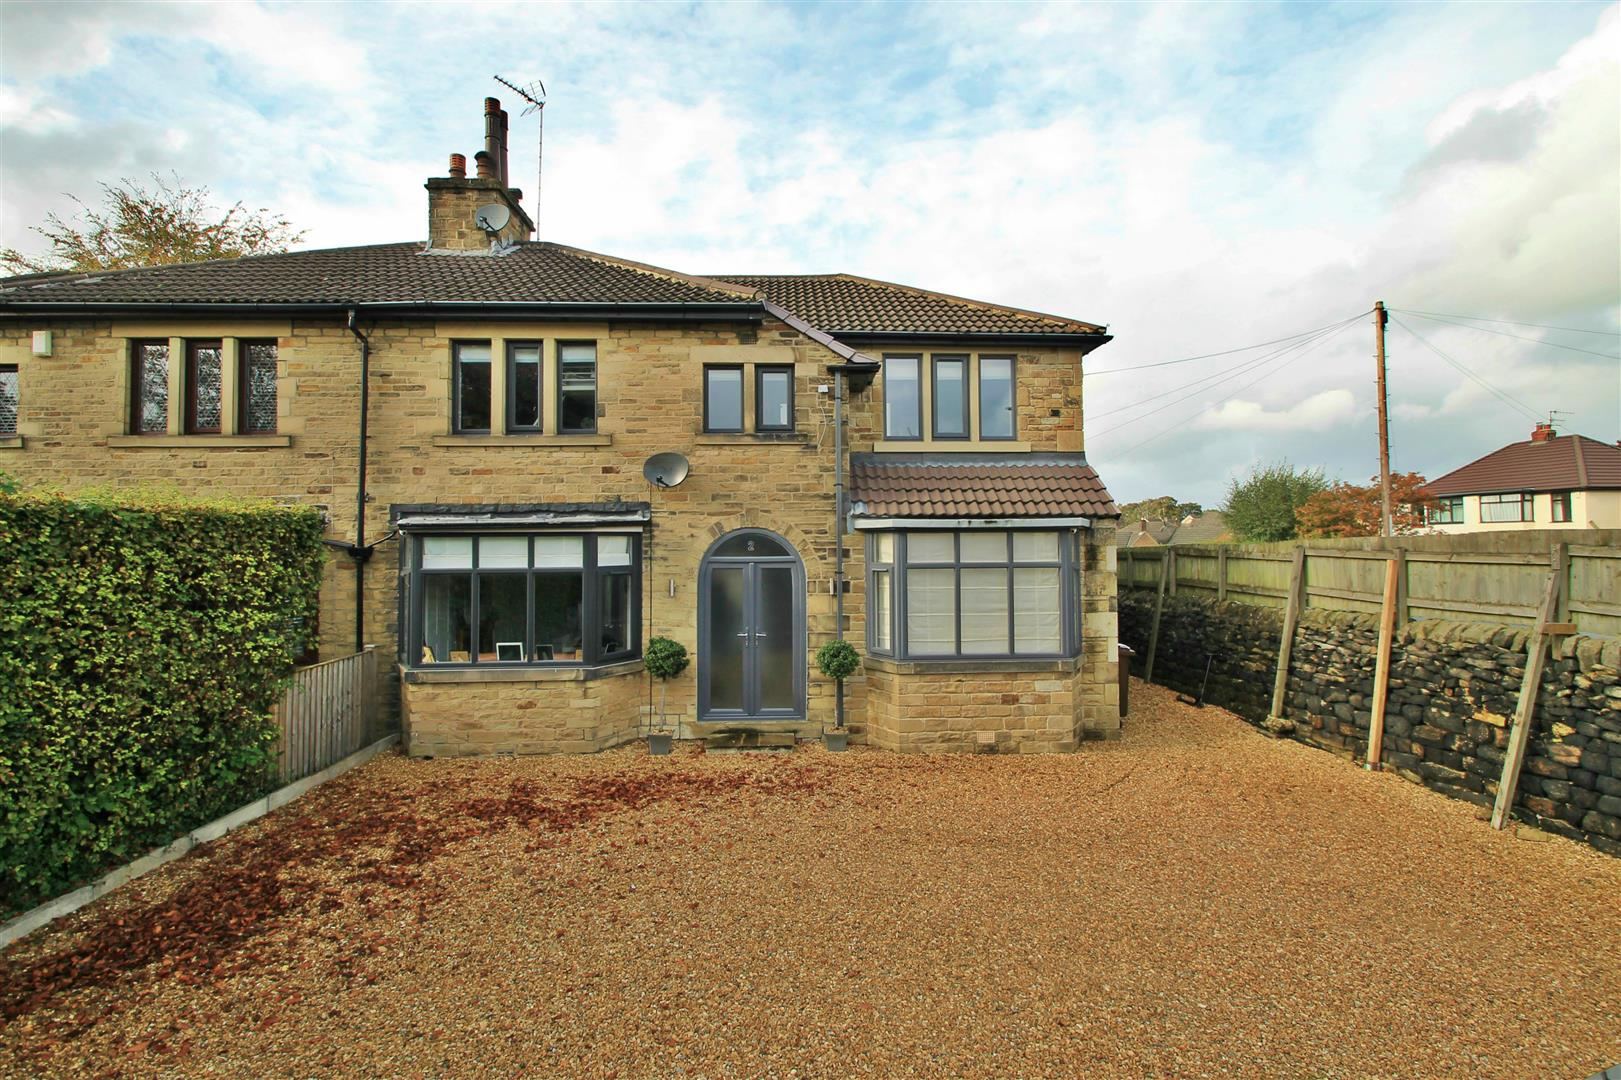 Brooklands Lane, Menston, LS29 6PJ